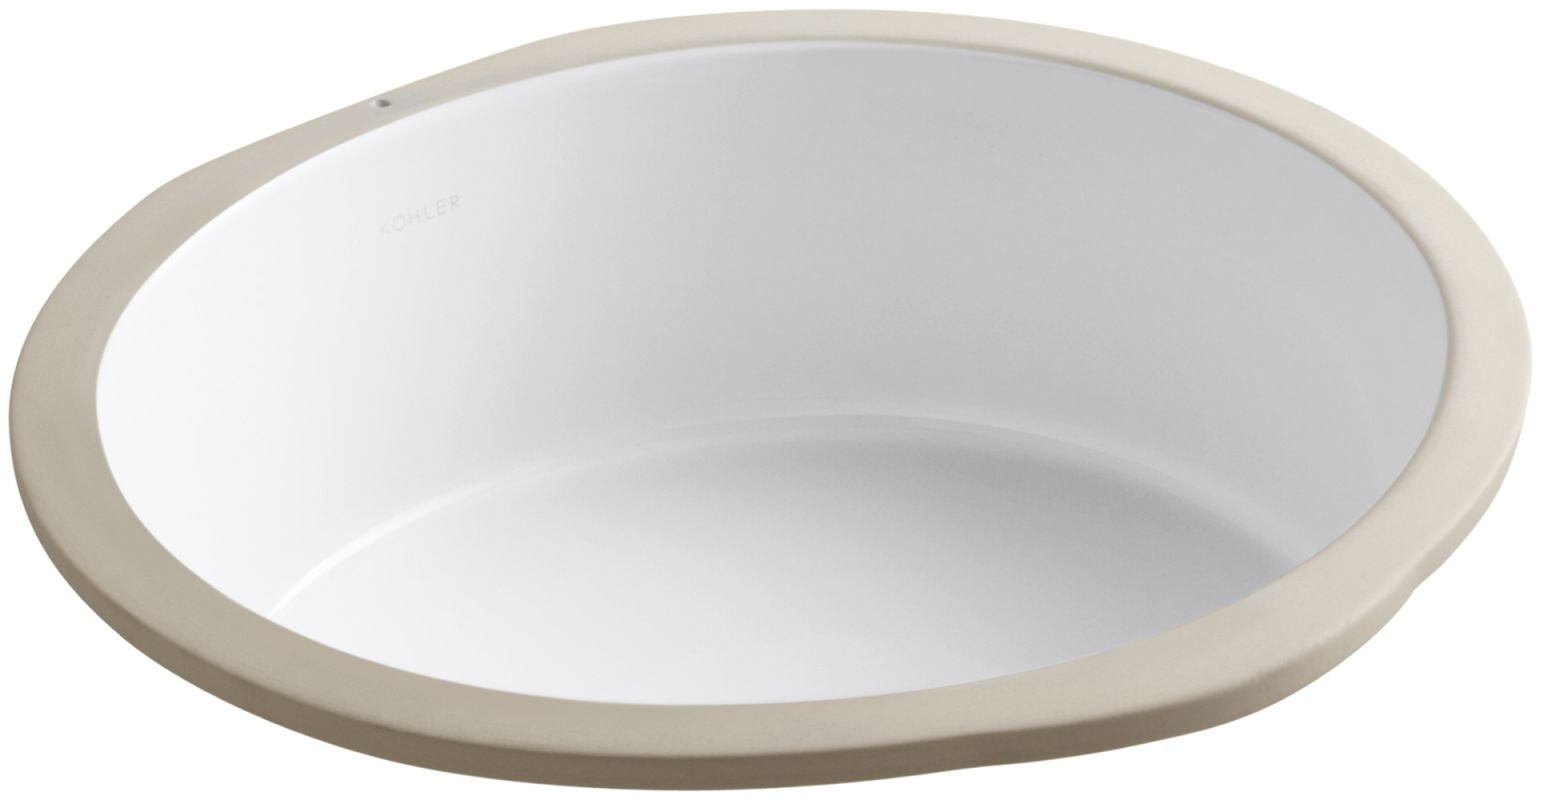 Kohler K 2883 0 White Verticyl 13 3 4 Quot Undermount Bathroom Sink With Overflow Faucetdirect Com